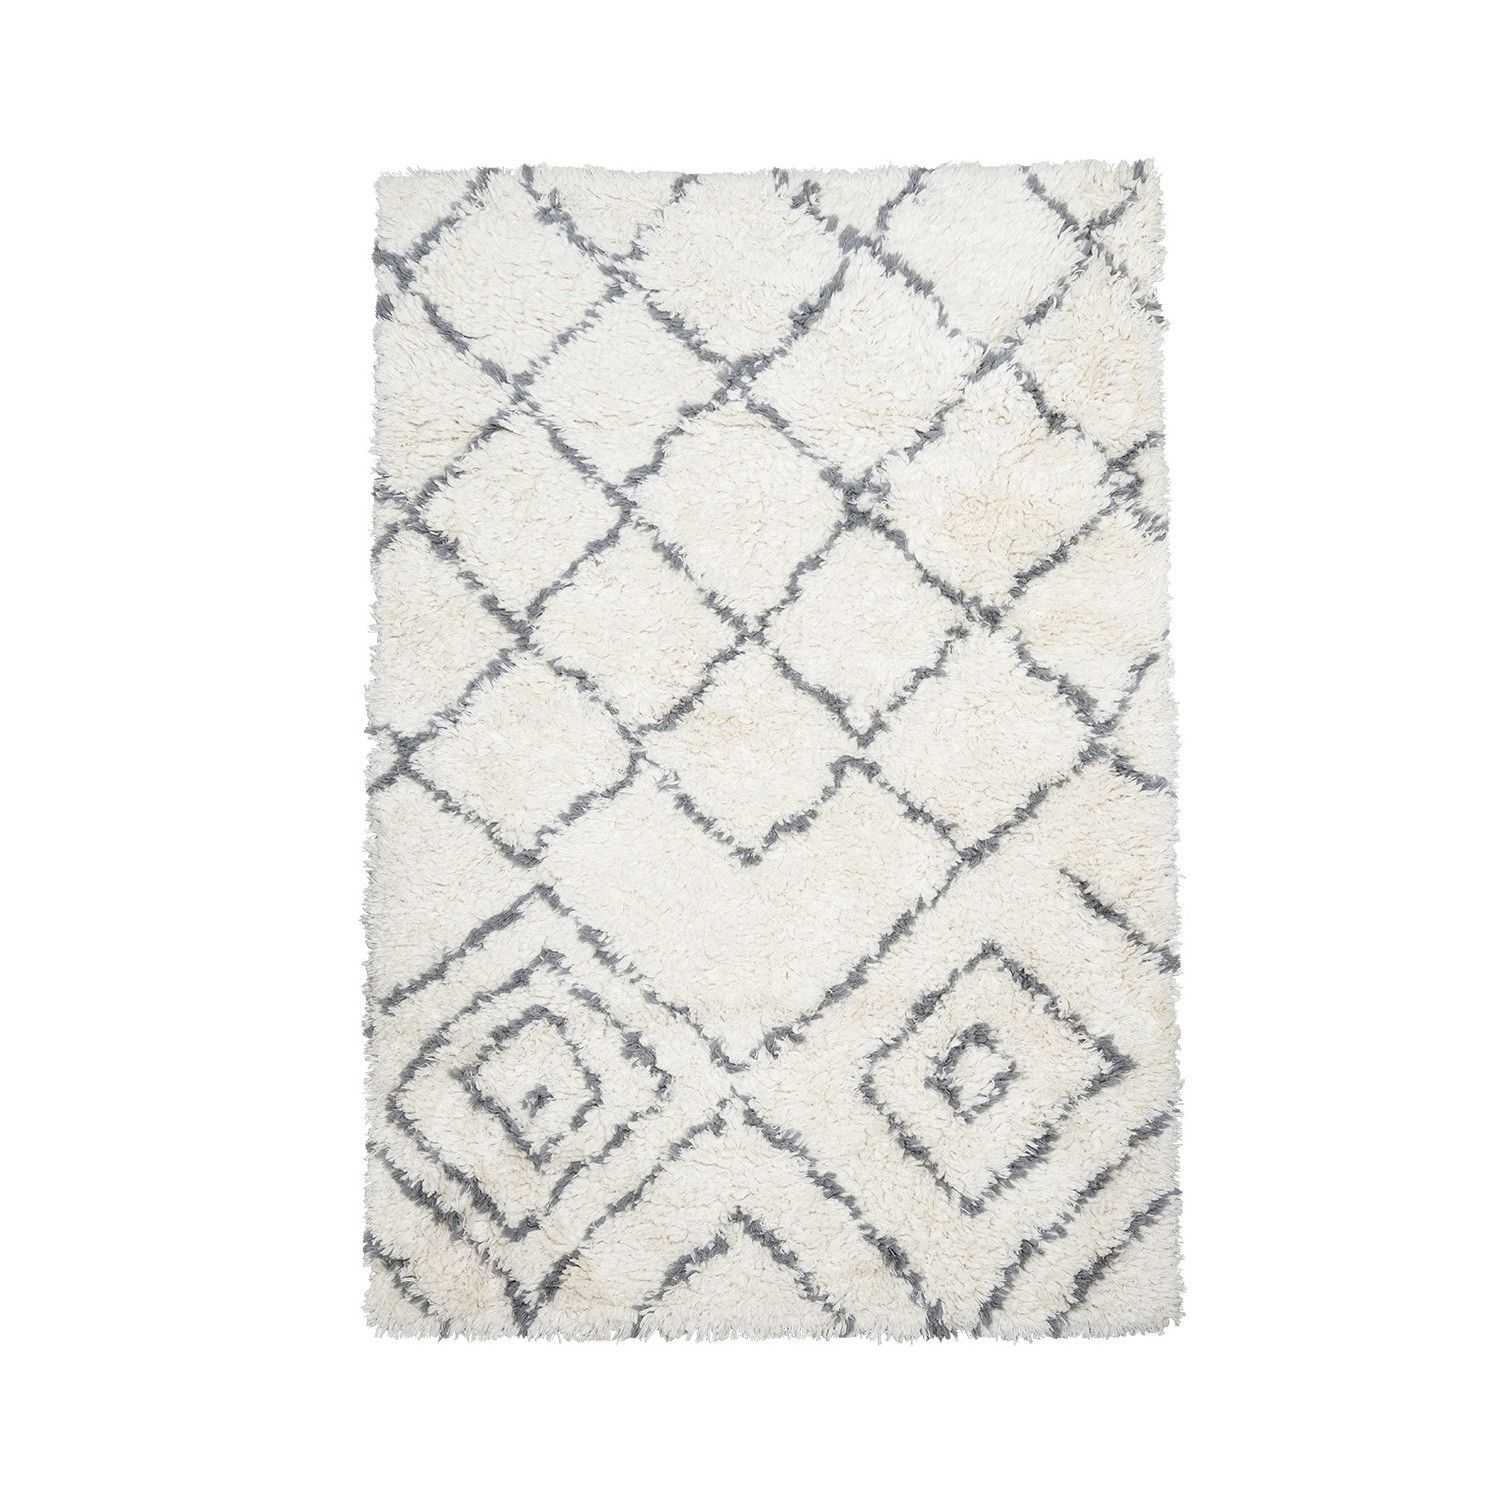 BERBER STYLE LARGE RUG by House Doctor – LO AND BEHOLD STORE ...